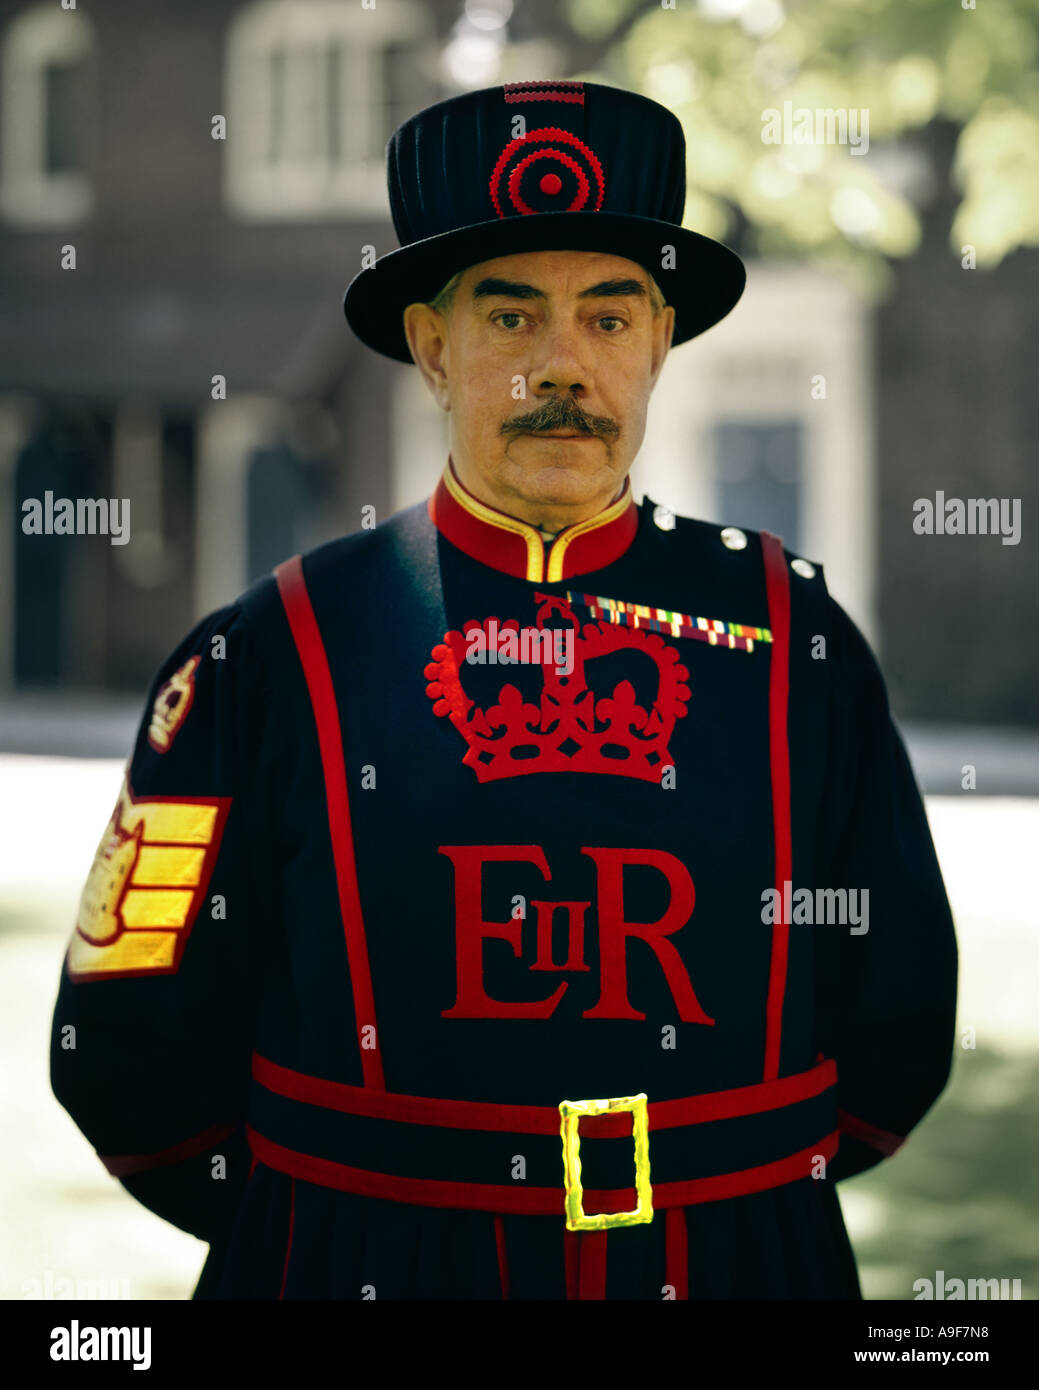 GB - LONDON: Beefeater am Tower of London Stockfoto